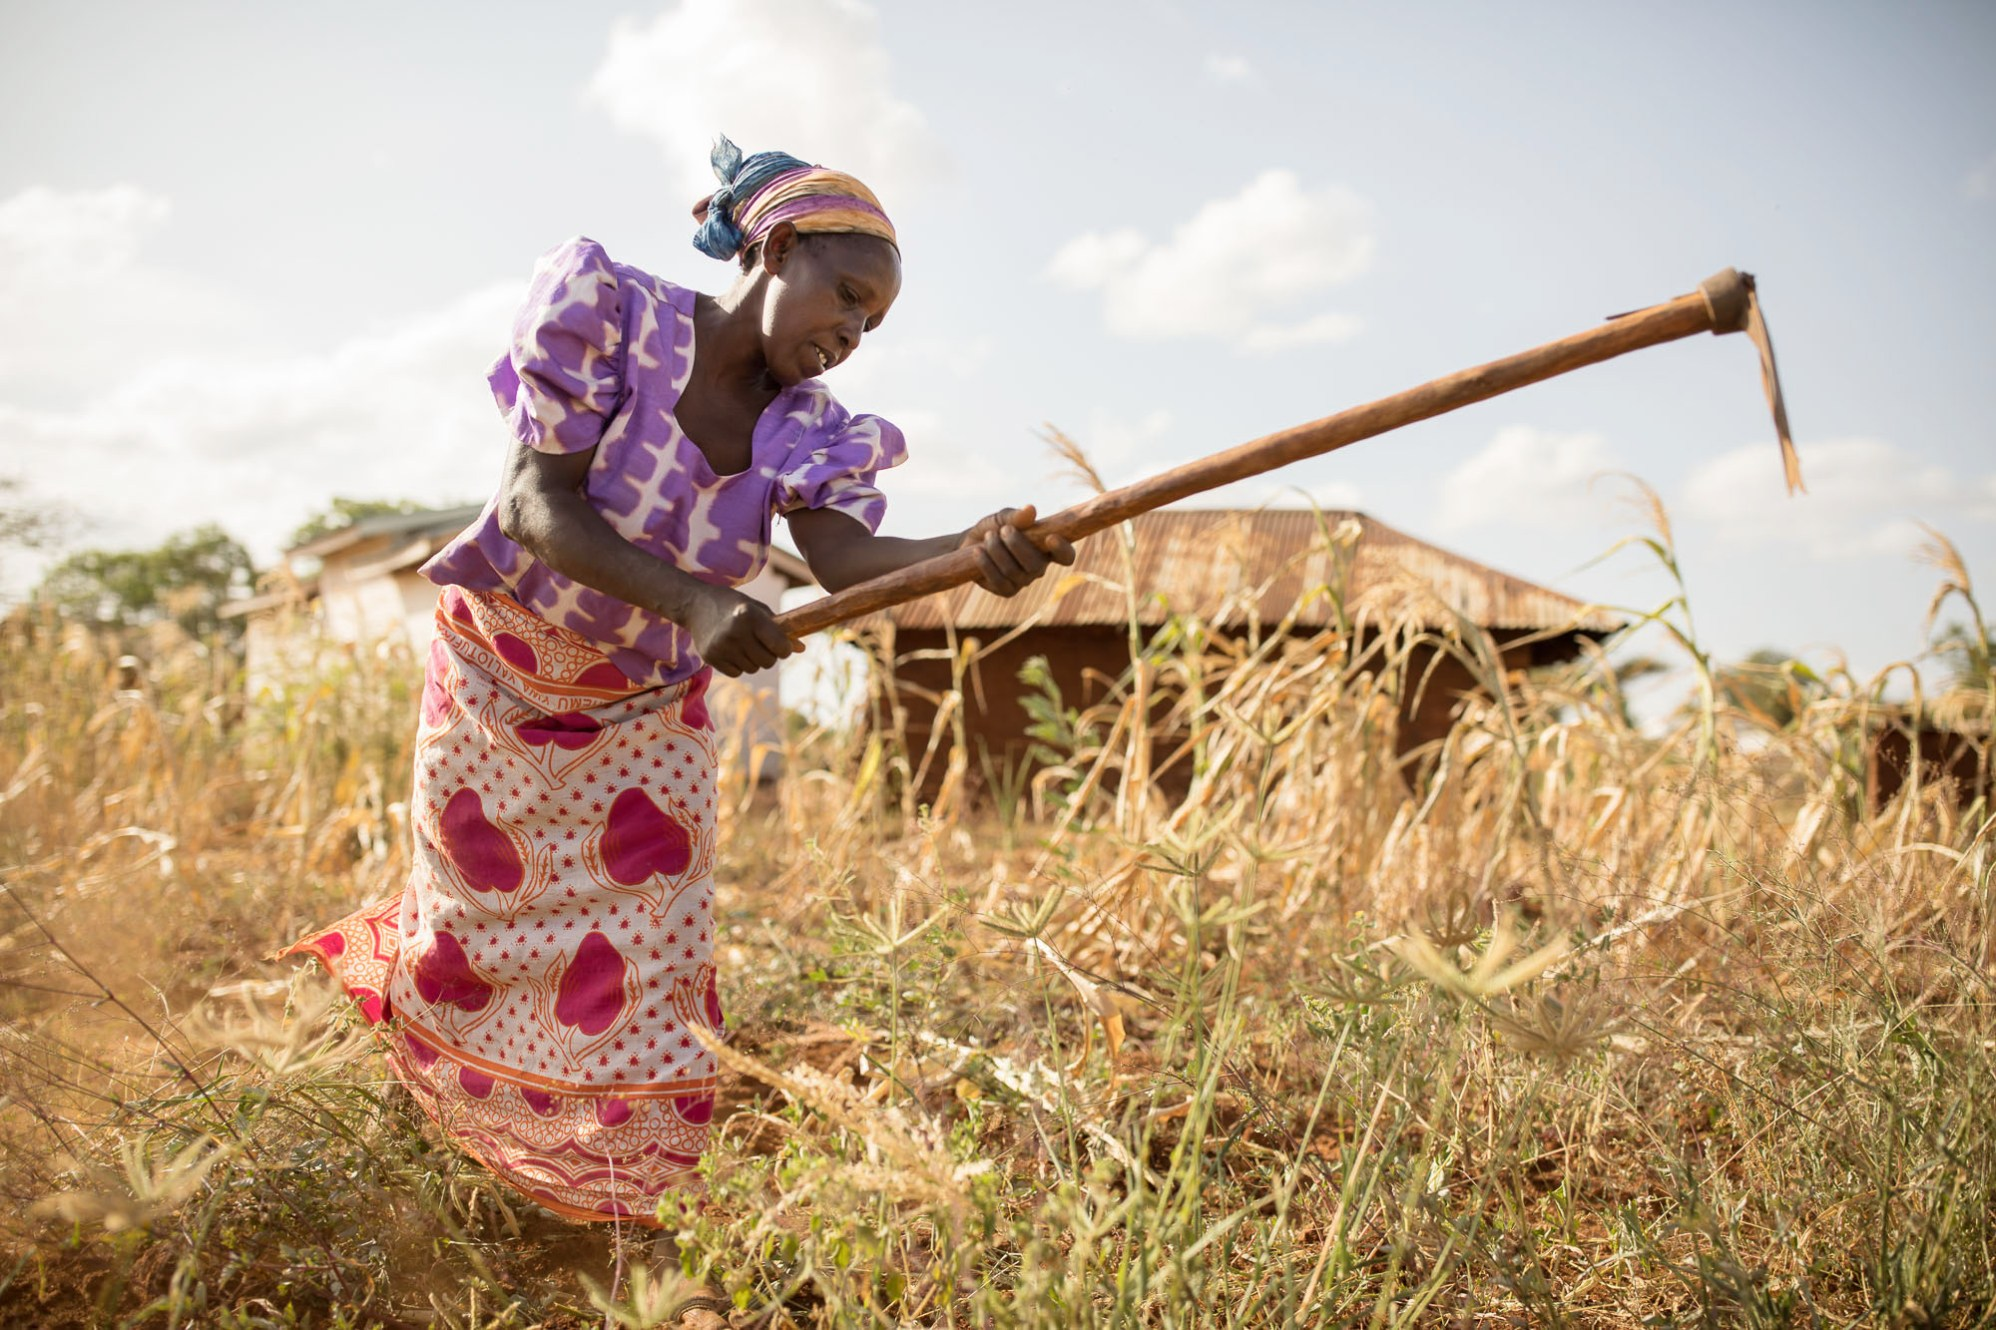 Mueni Ndambuki struggles to farm in dry and infertile farmland in Makueni County, Kenya.